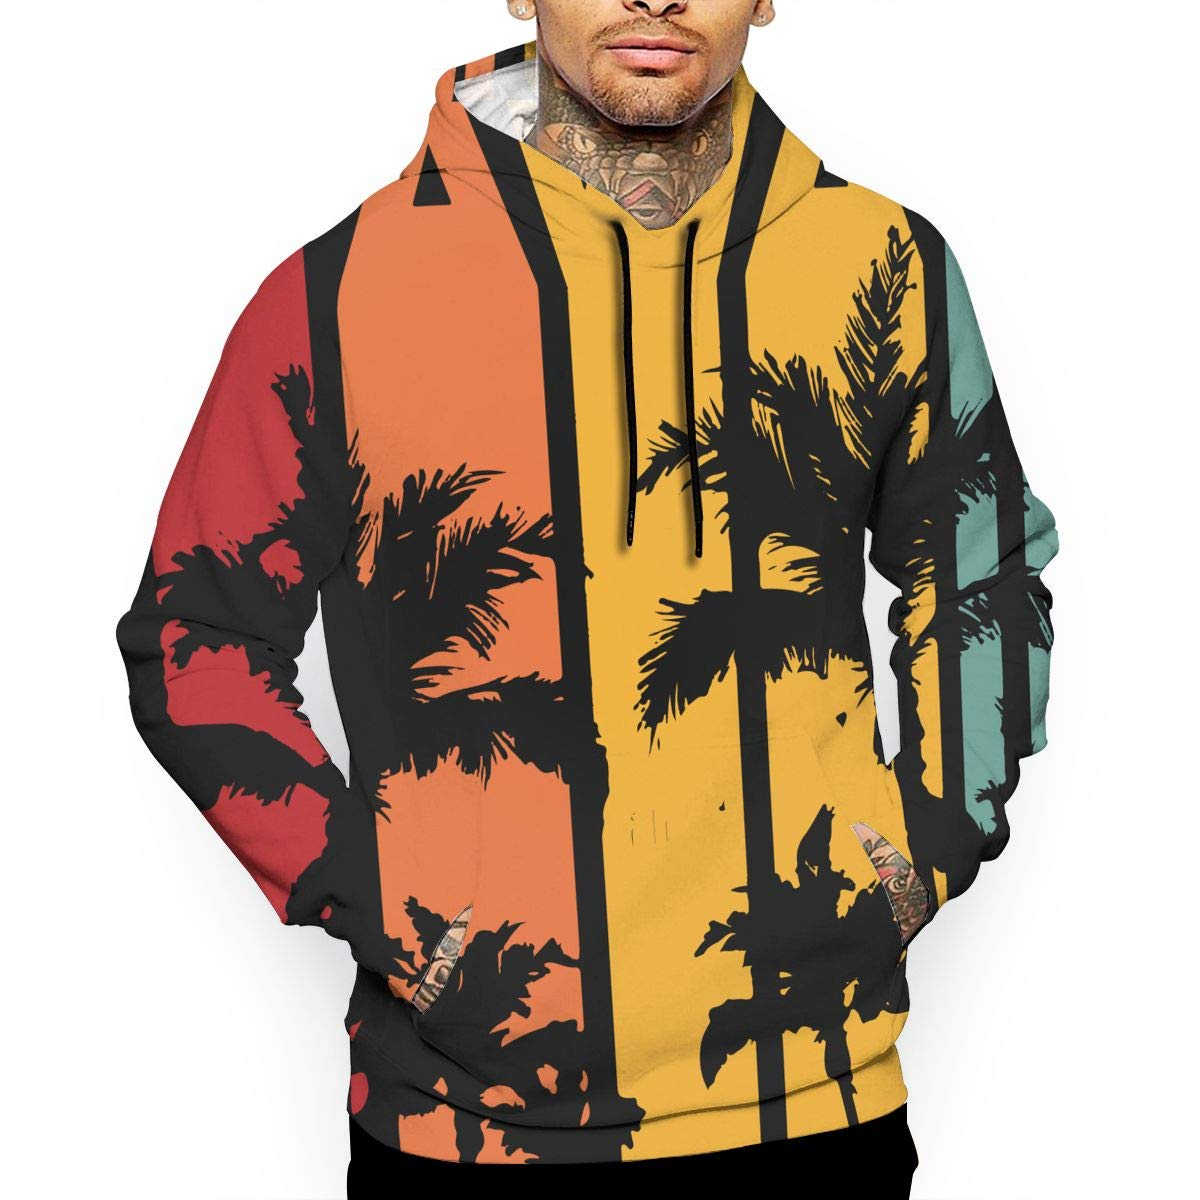 Mens Vintage Hawaiian Pullover Hoodie Athletic 100/% Cotton Outwear with Pocket for Men